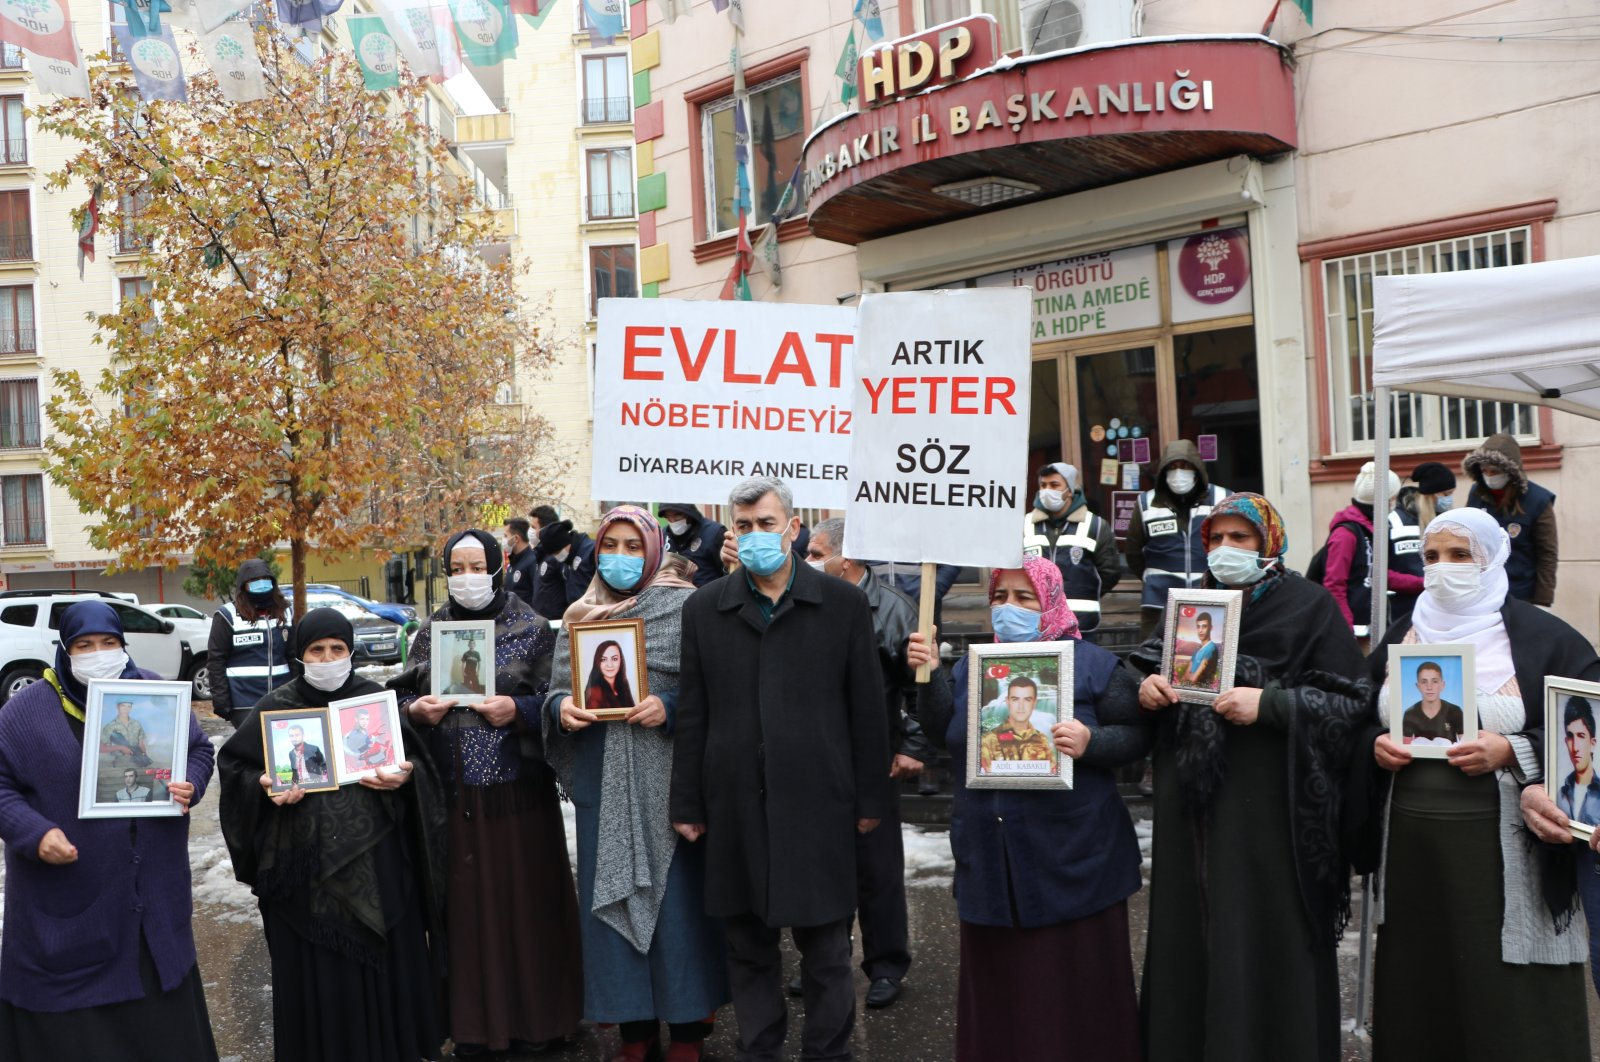 Families holding photos of their children abducted by the PKK terrorist group stand in front of the HDP headquarters in Turkey's Diyarbakır province on Jan. 19, 2021 (AA Photo)